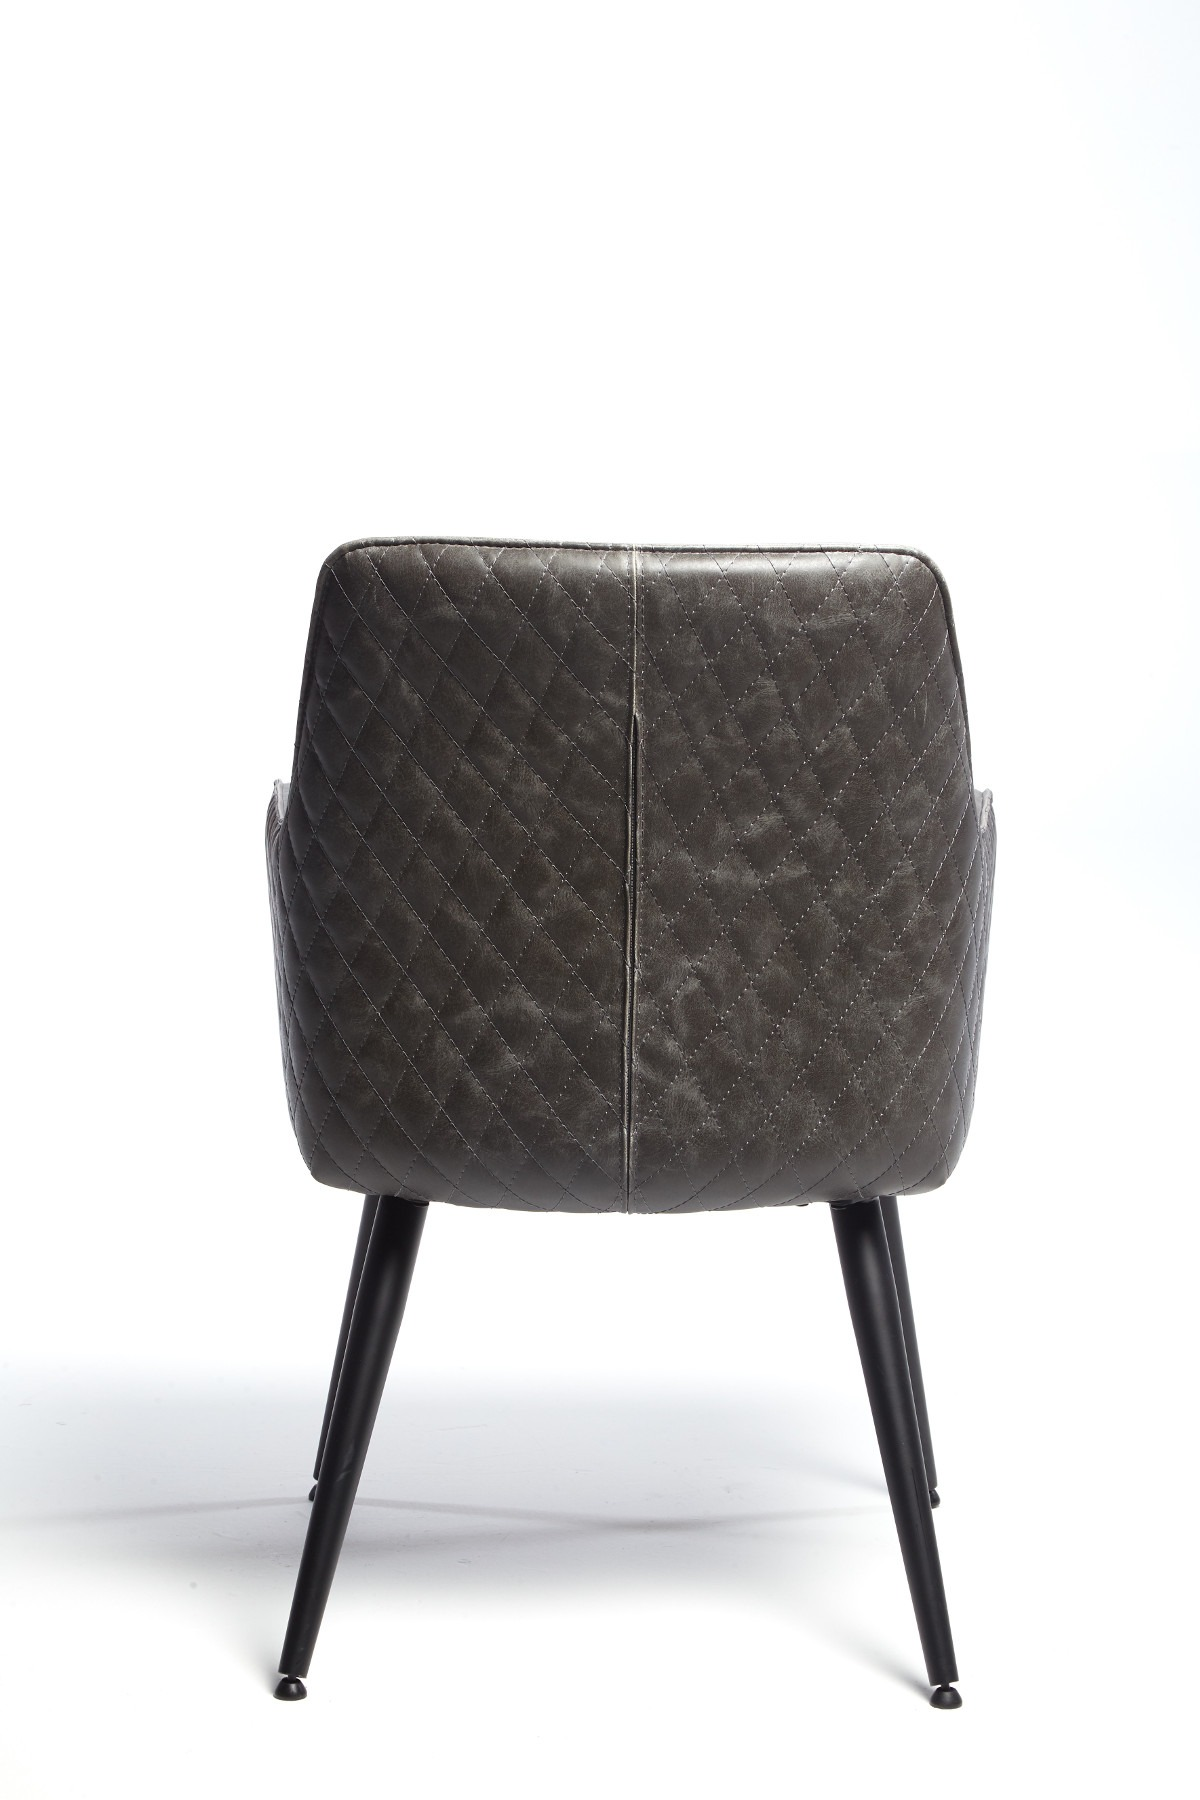 ORLANDO GREY DINING CHAIR - BACK DETAIL